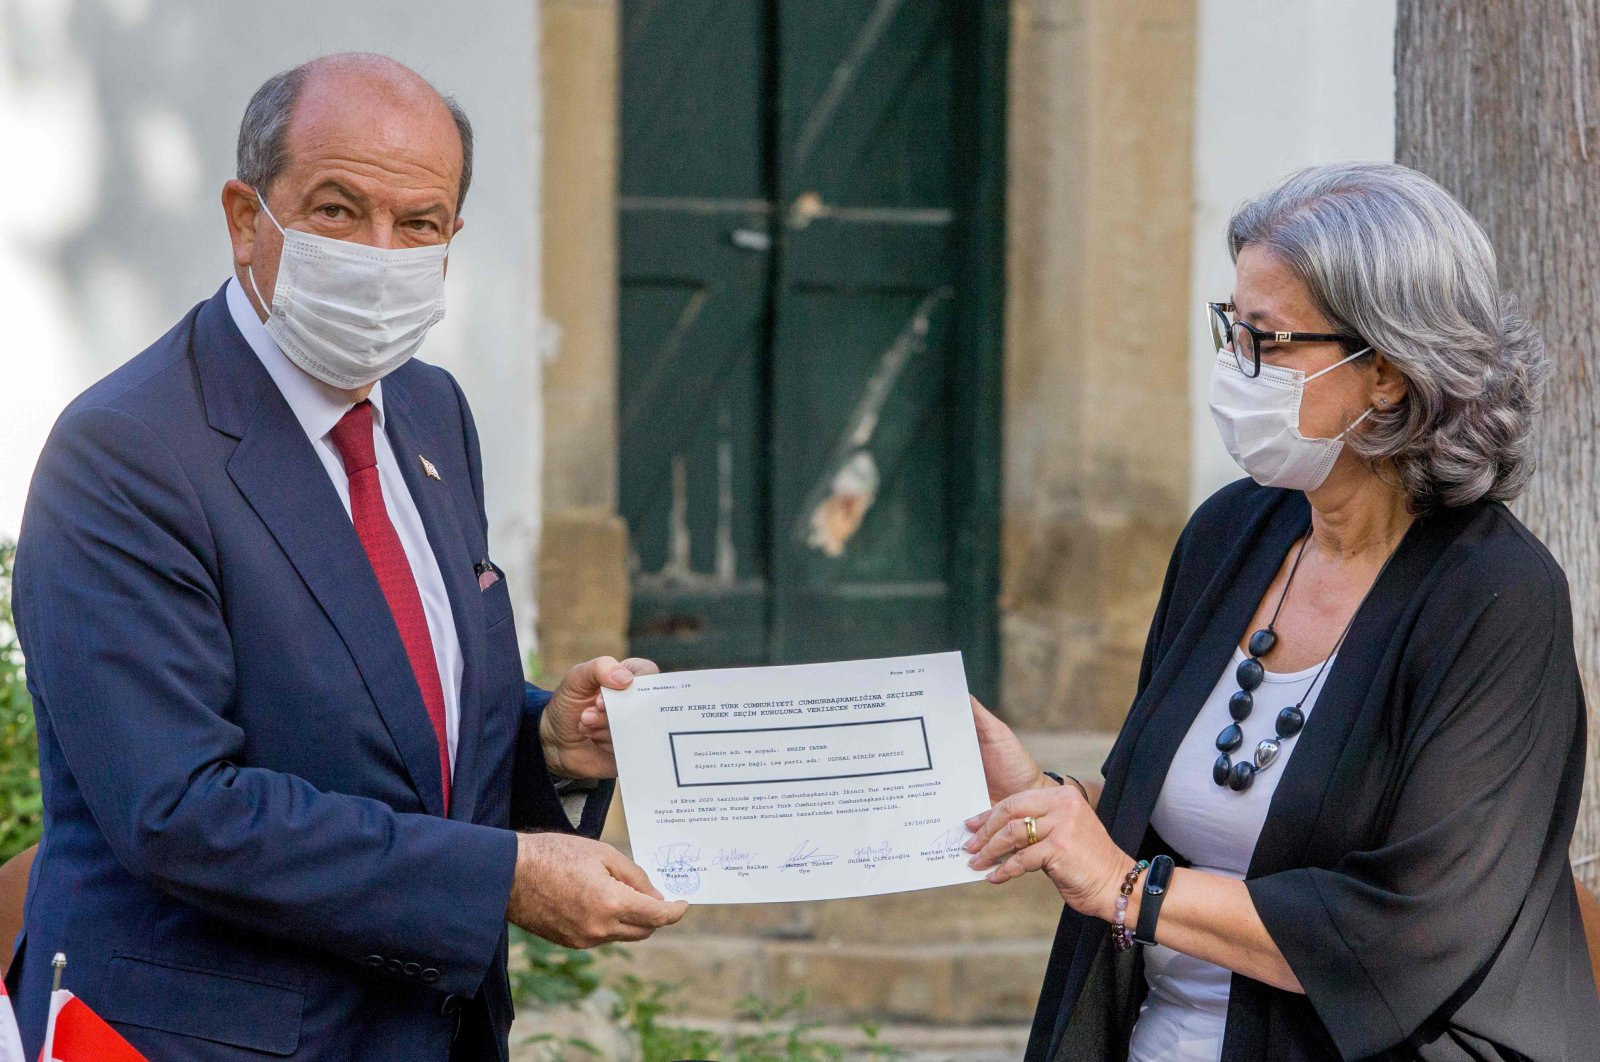 Newly elected Turkish Cypriot President Ersin Tatar (L) receives the certificate that accredits him as the winner of the presidential elections in the northern part of Nicosia (Lefkoşa), Turkish Republic of Northern Cyprus, Oct. 19, 2020. (AFP Photo)